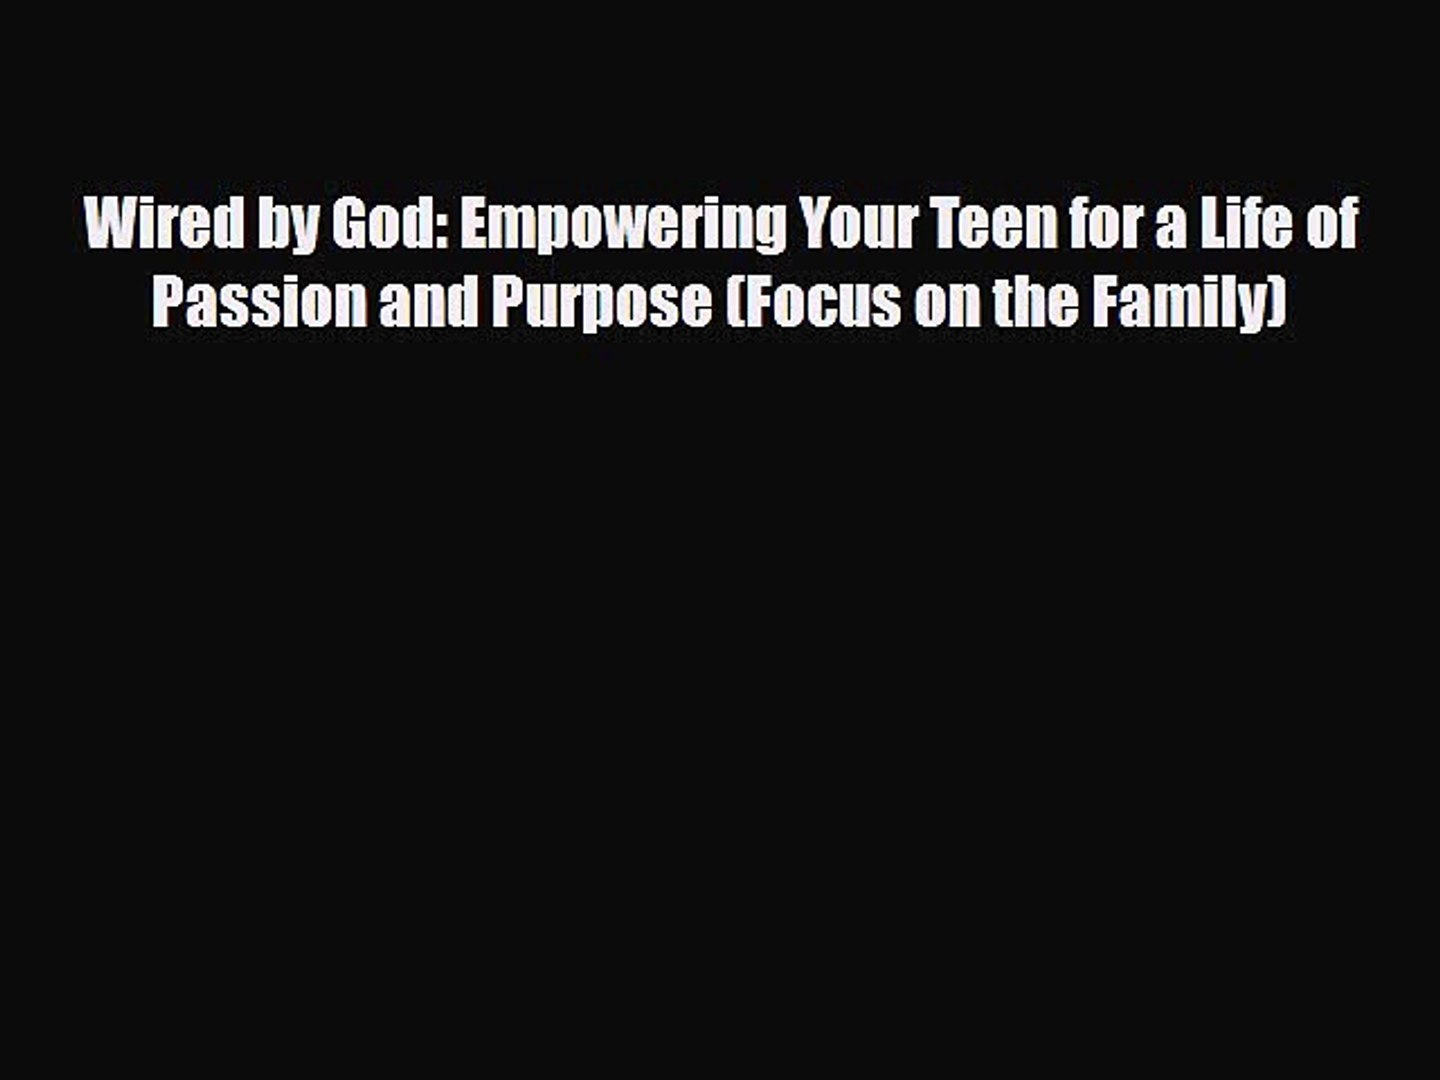 [PDF] Wired by God: Empowering Your Teen for a Life of Passion and Purpose (Focus on the Family)